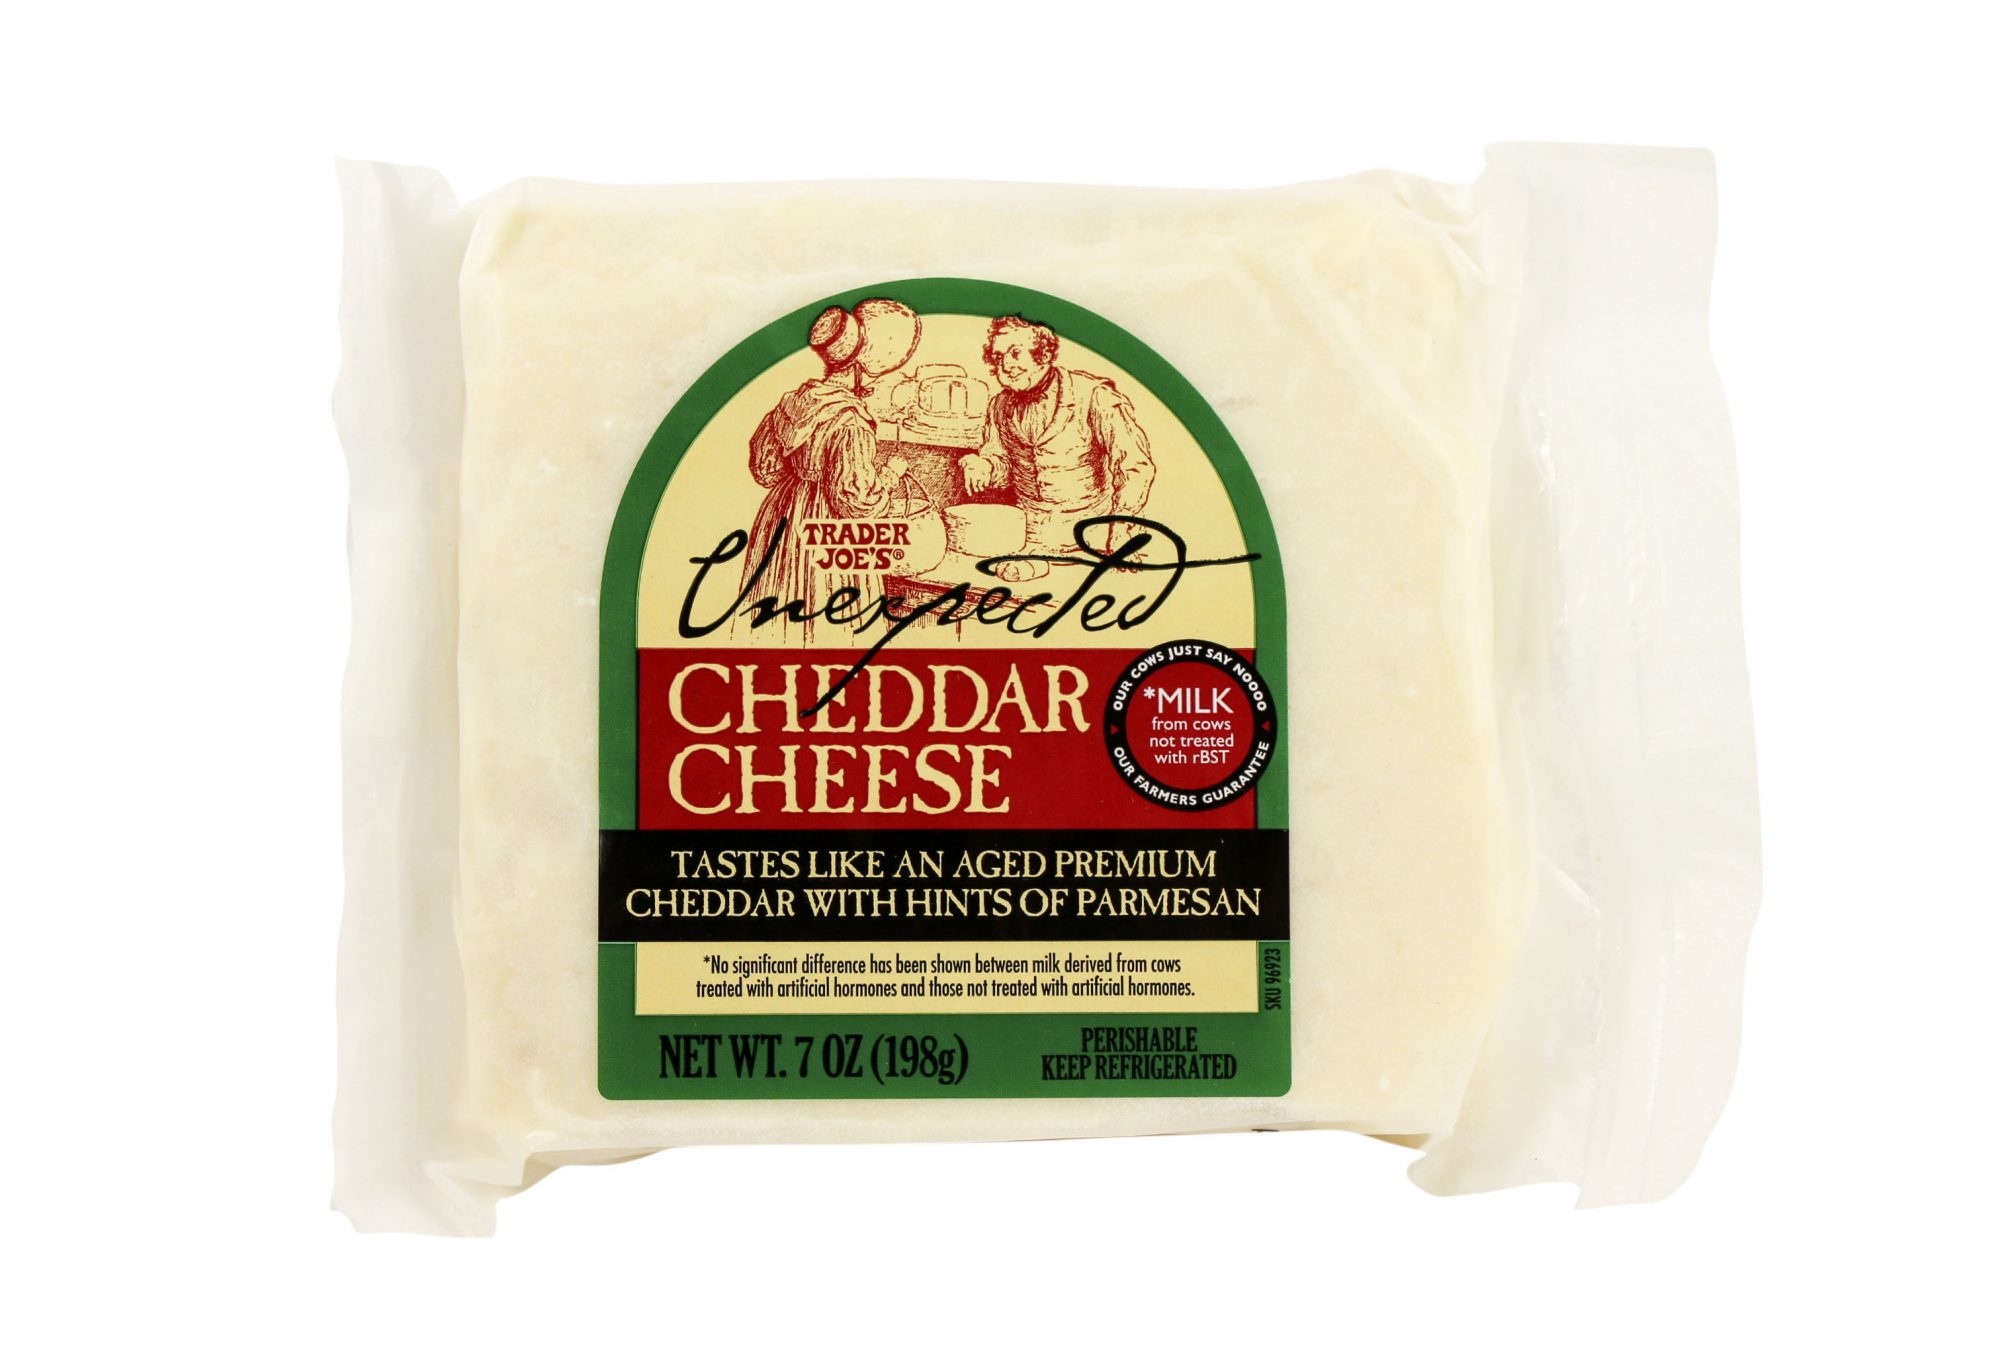 Unexpected-Cheddar